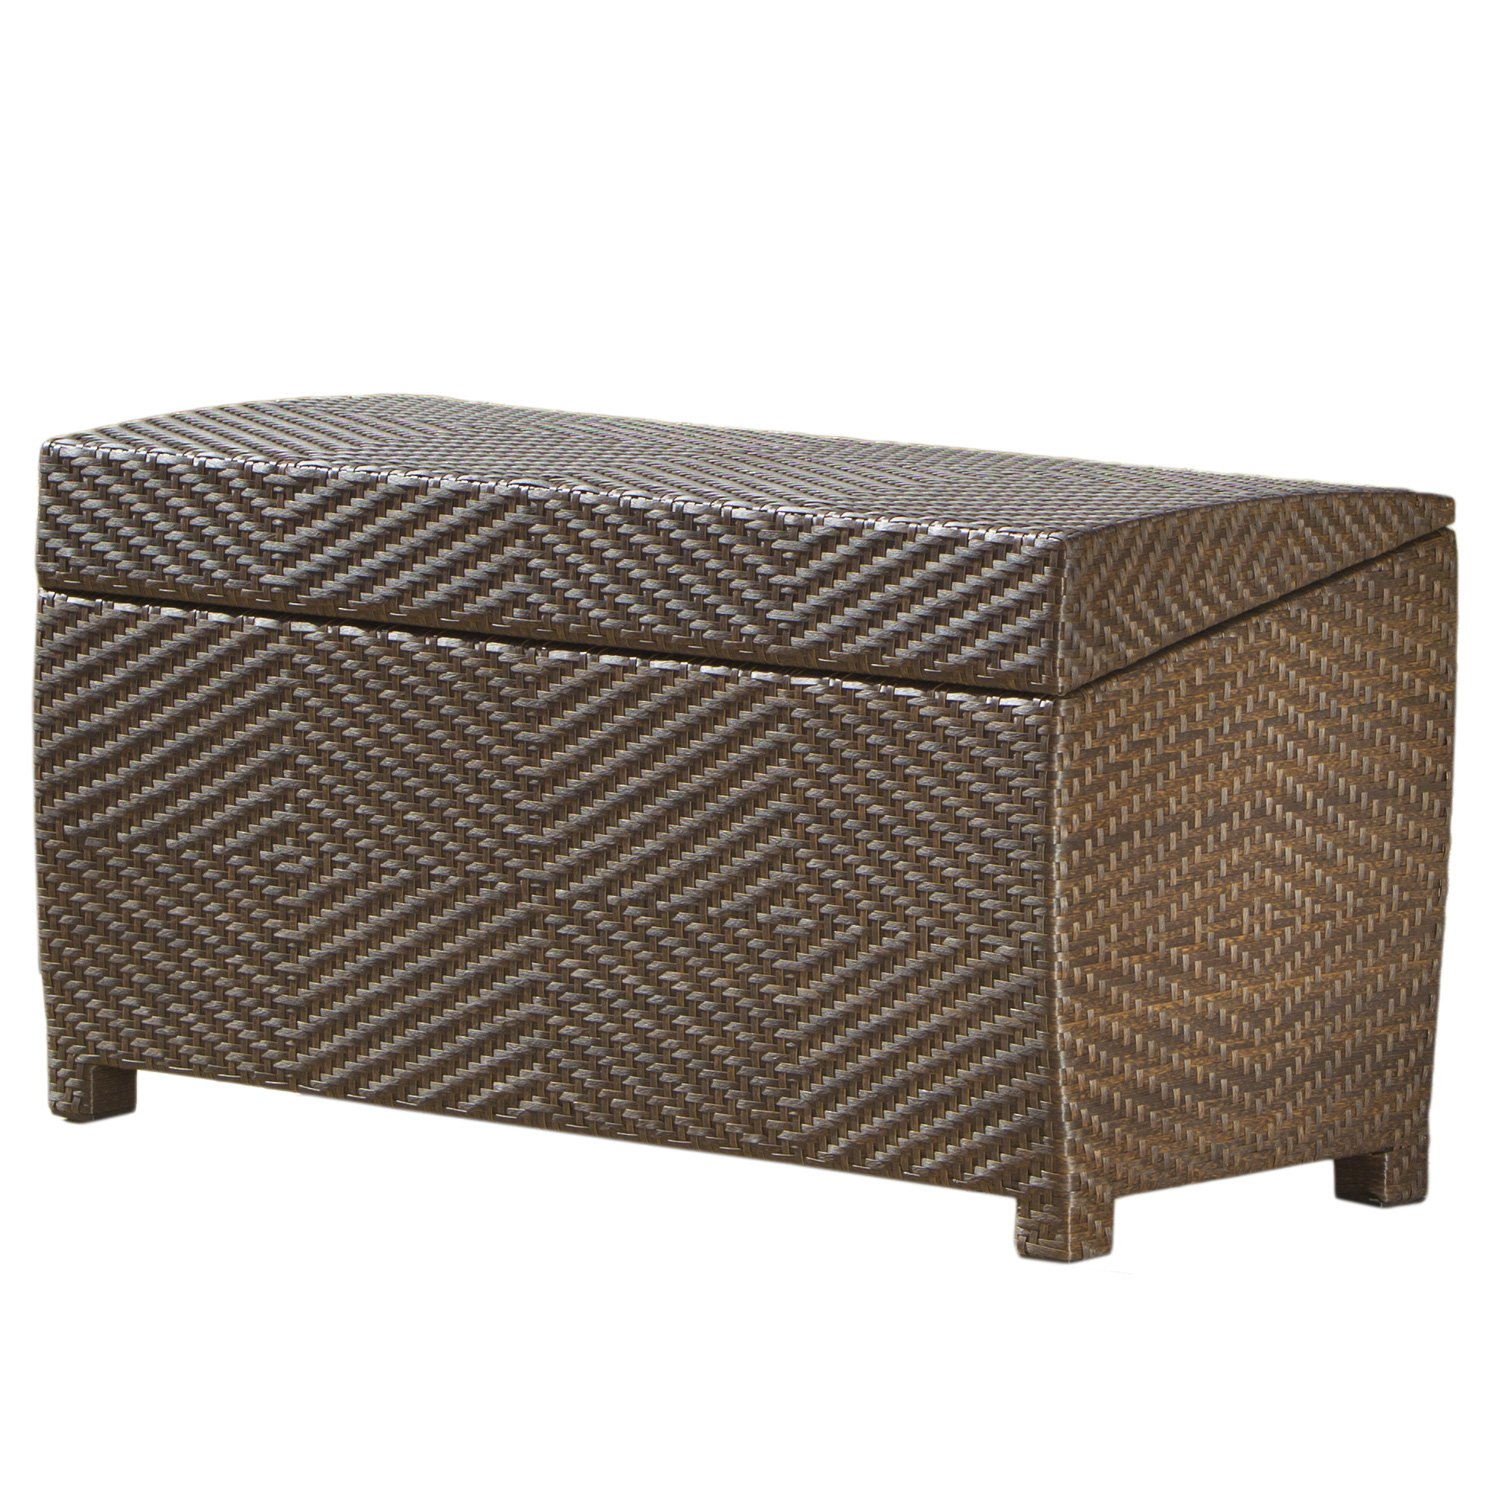 Amazon.com : Best Selling Outdoor Wicker Storage Ottoman : Patio ...